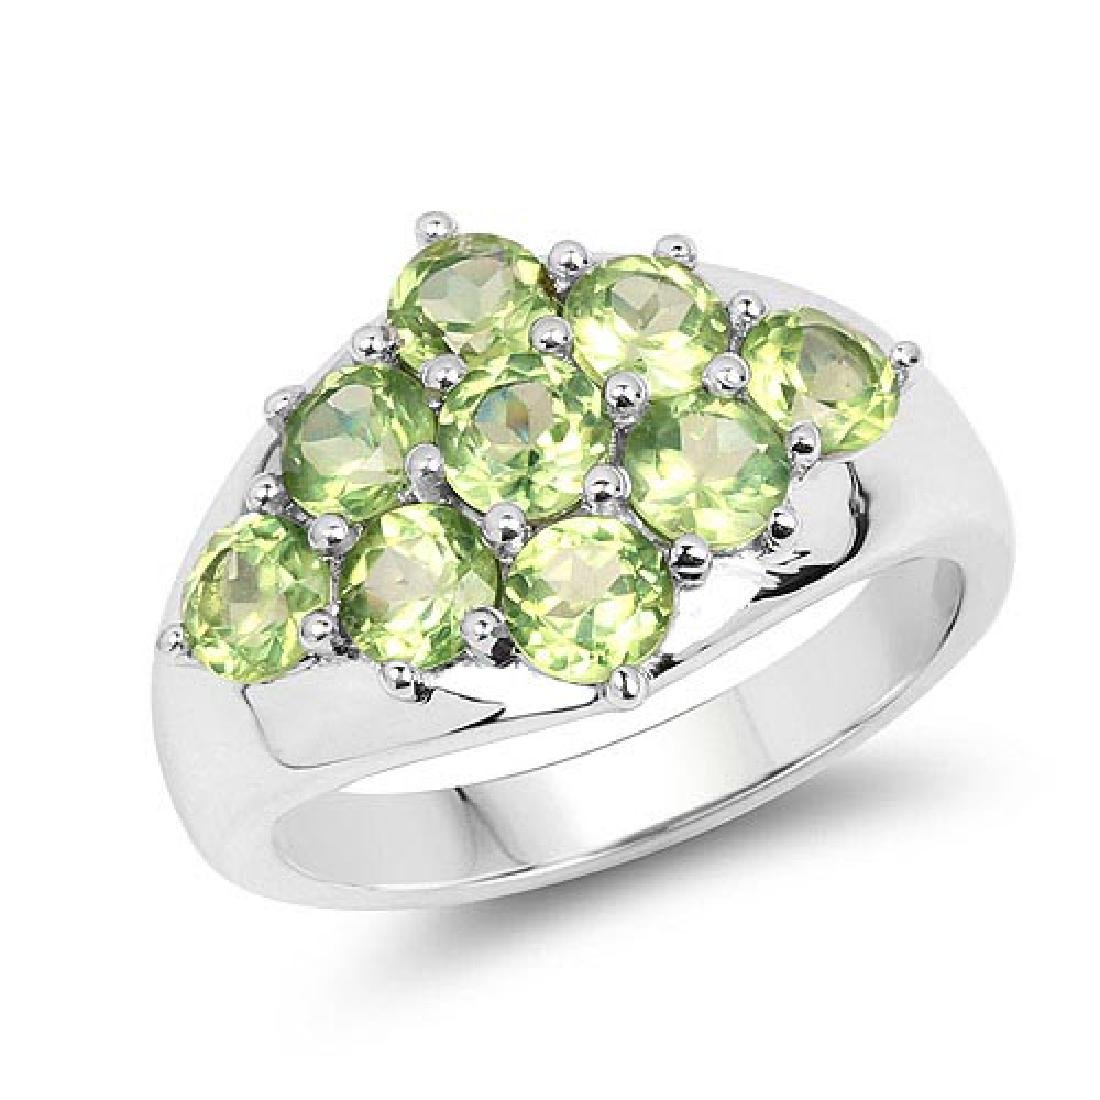 2.16 Carat Genuine Peridot .925 Sterling Silver Ring